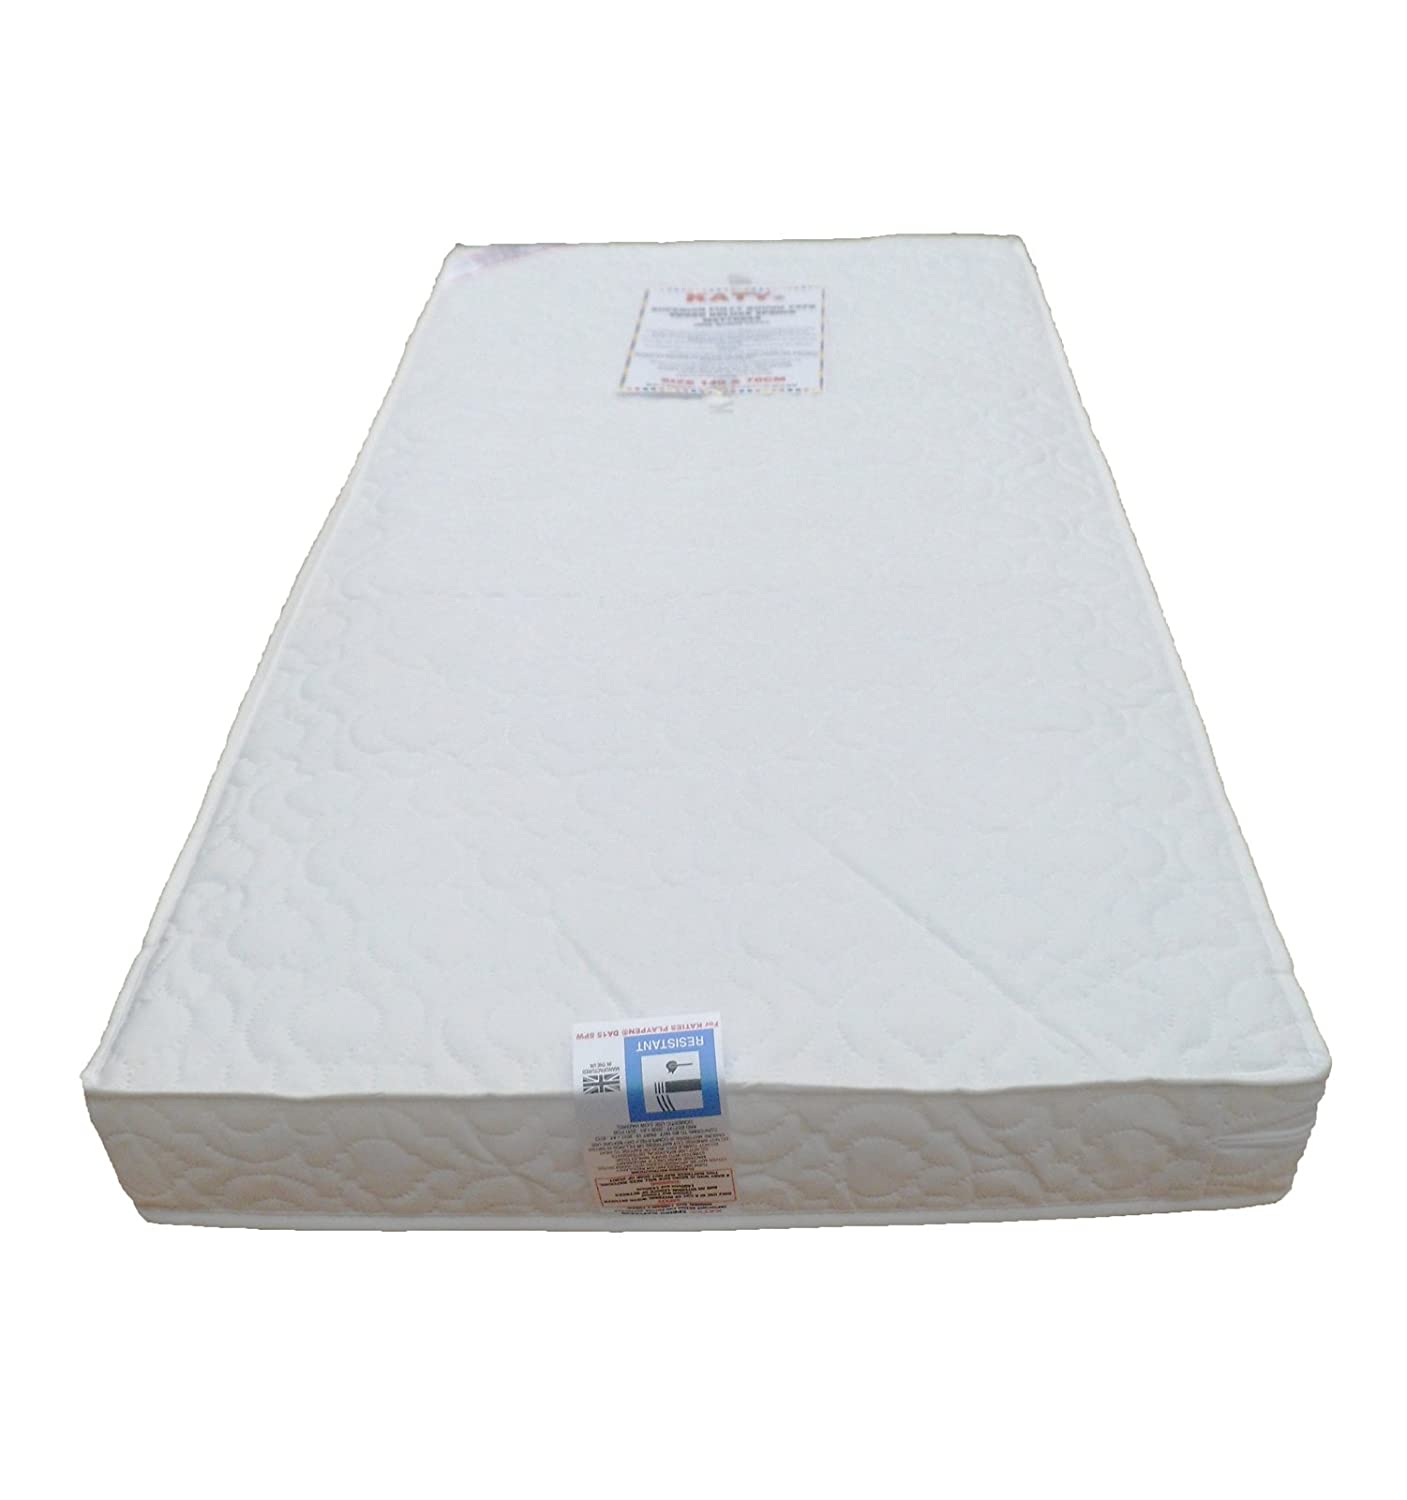 KATY® Superior Deluxe Spring Cot Bed-Junior Bed Sprung Mattress 140x70 x 10CM THICK British Made With High Grade Density Foam CMHR28 BBB-KATY®-140